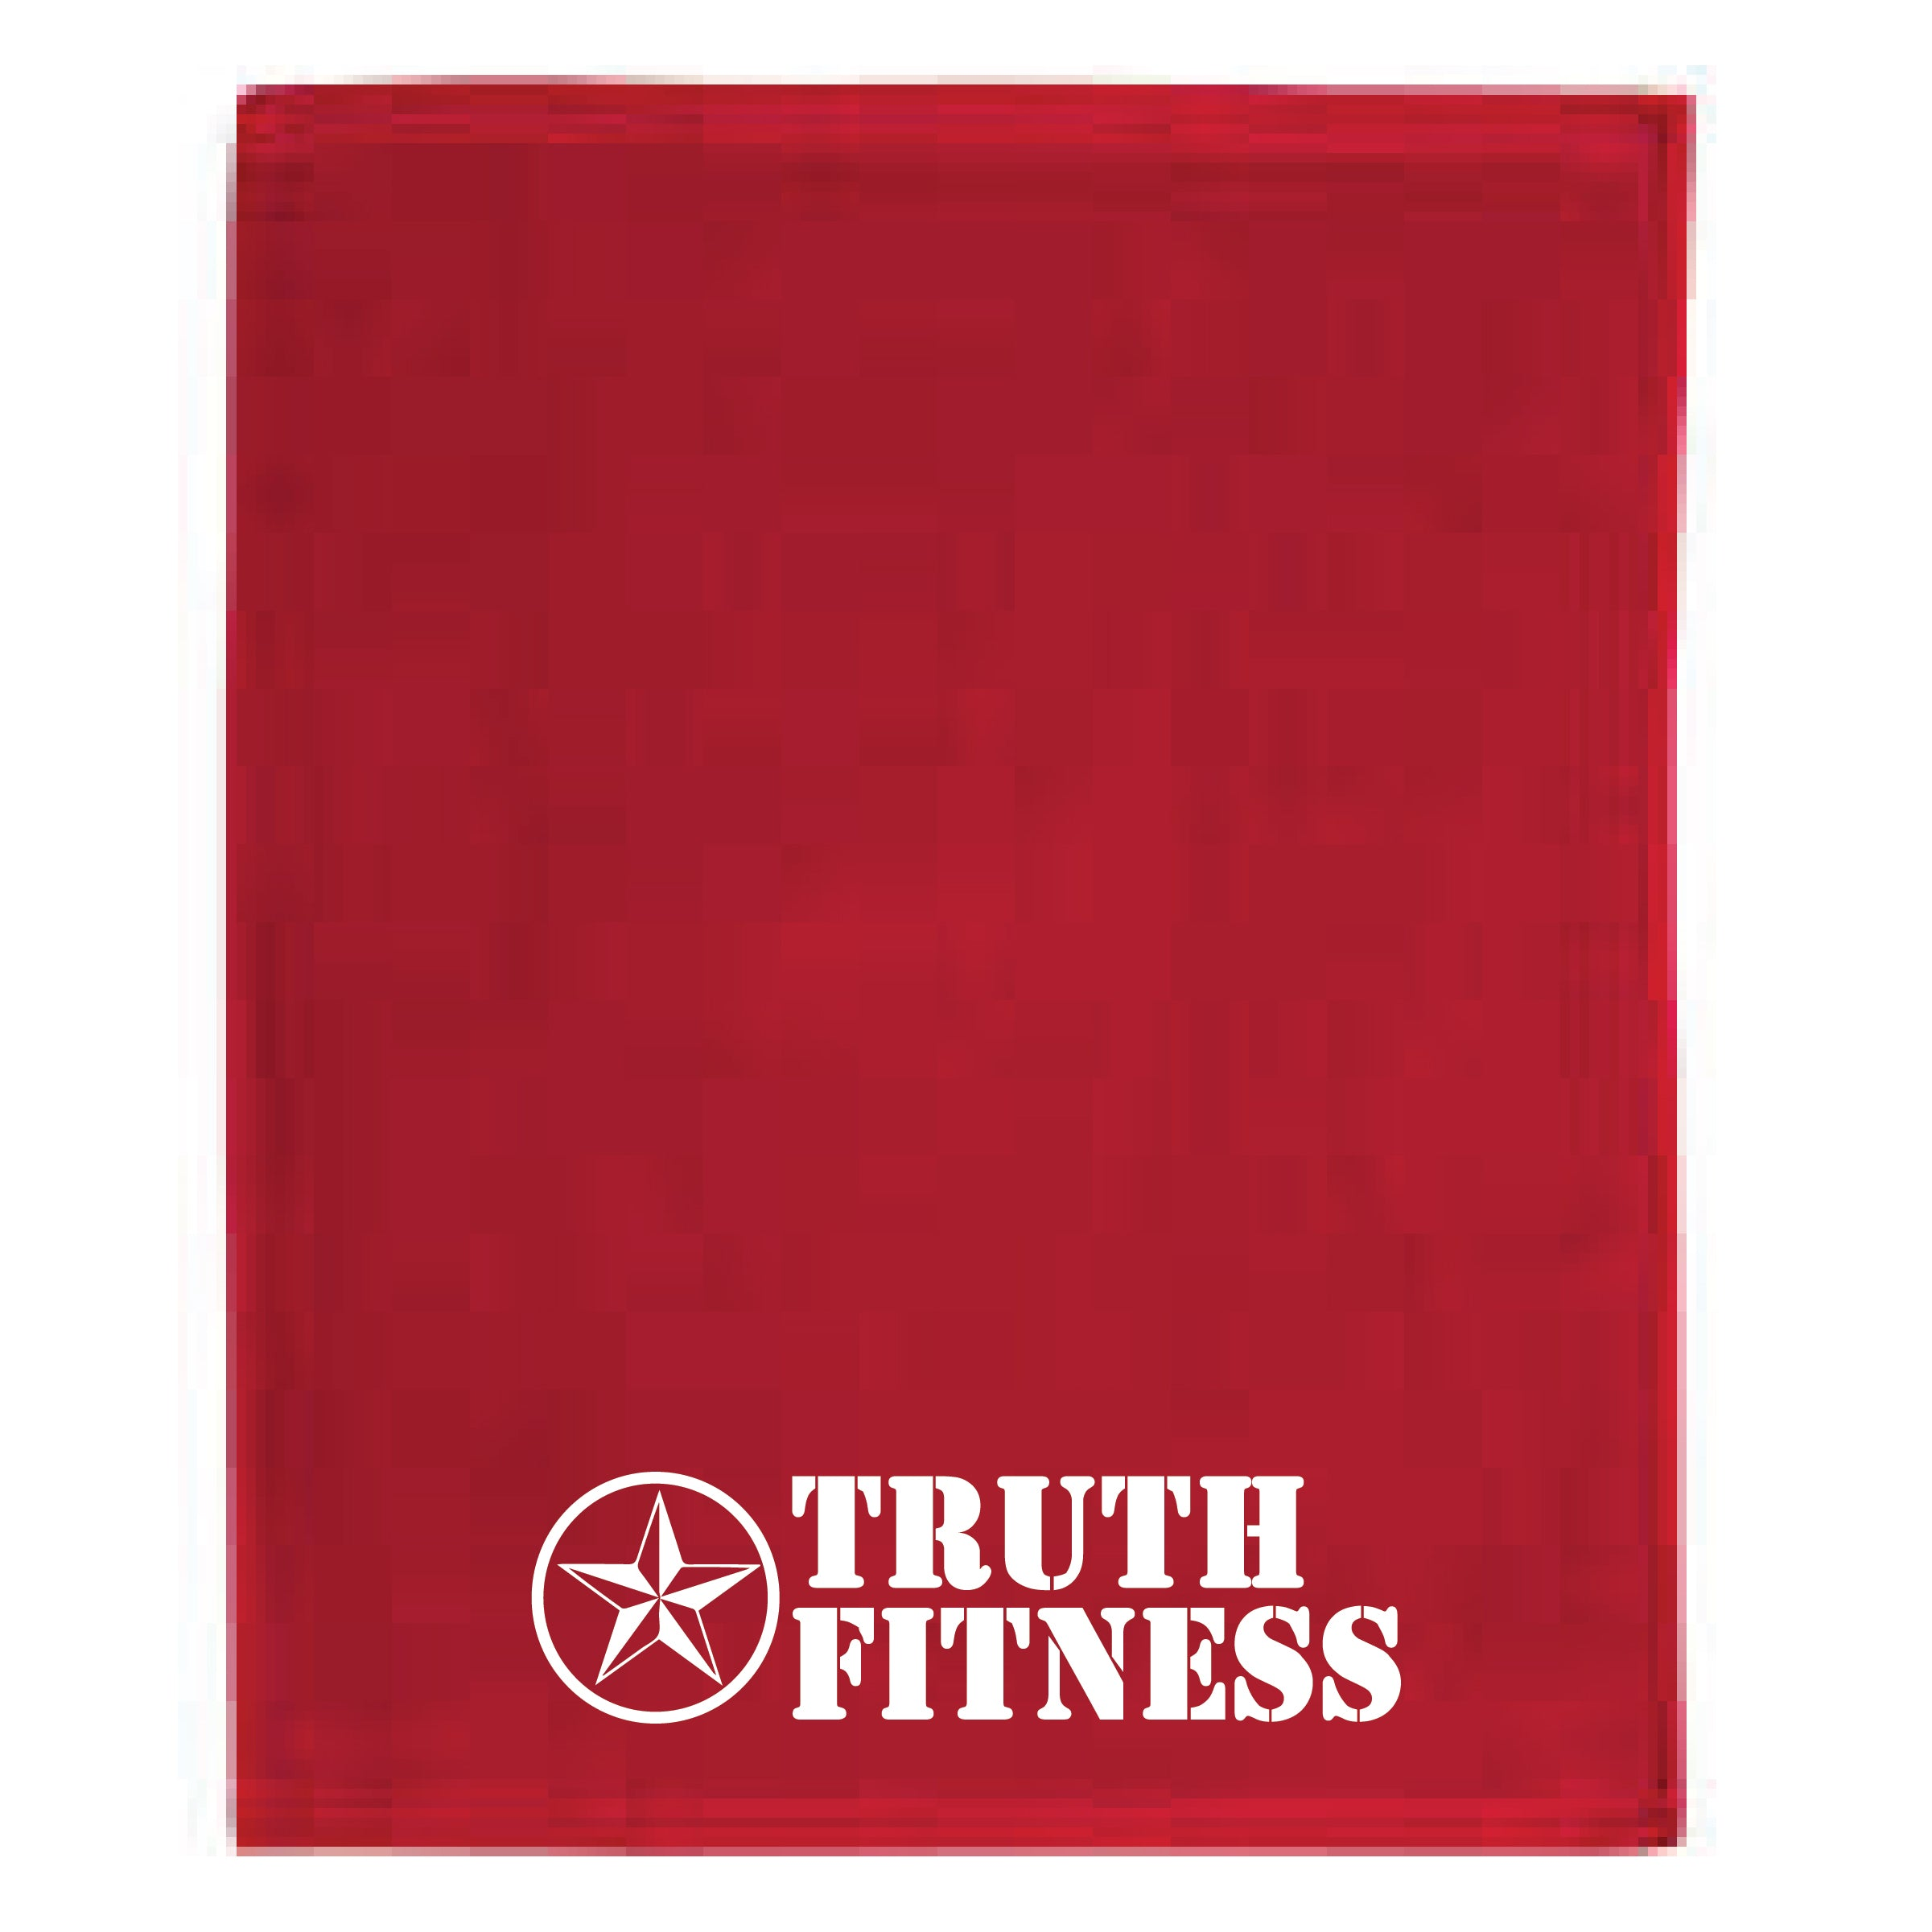 TFSTAFF Gym Towel 15 x 18